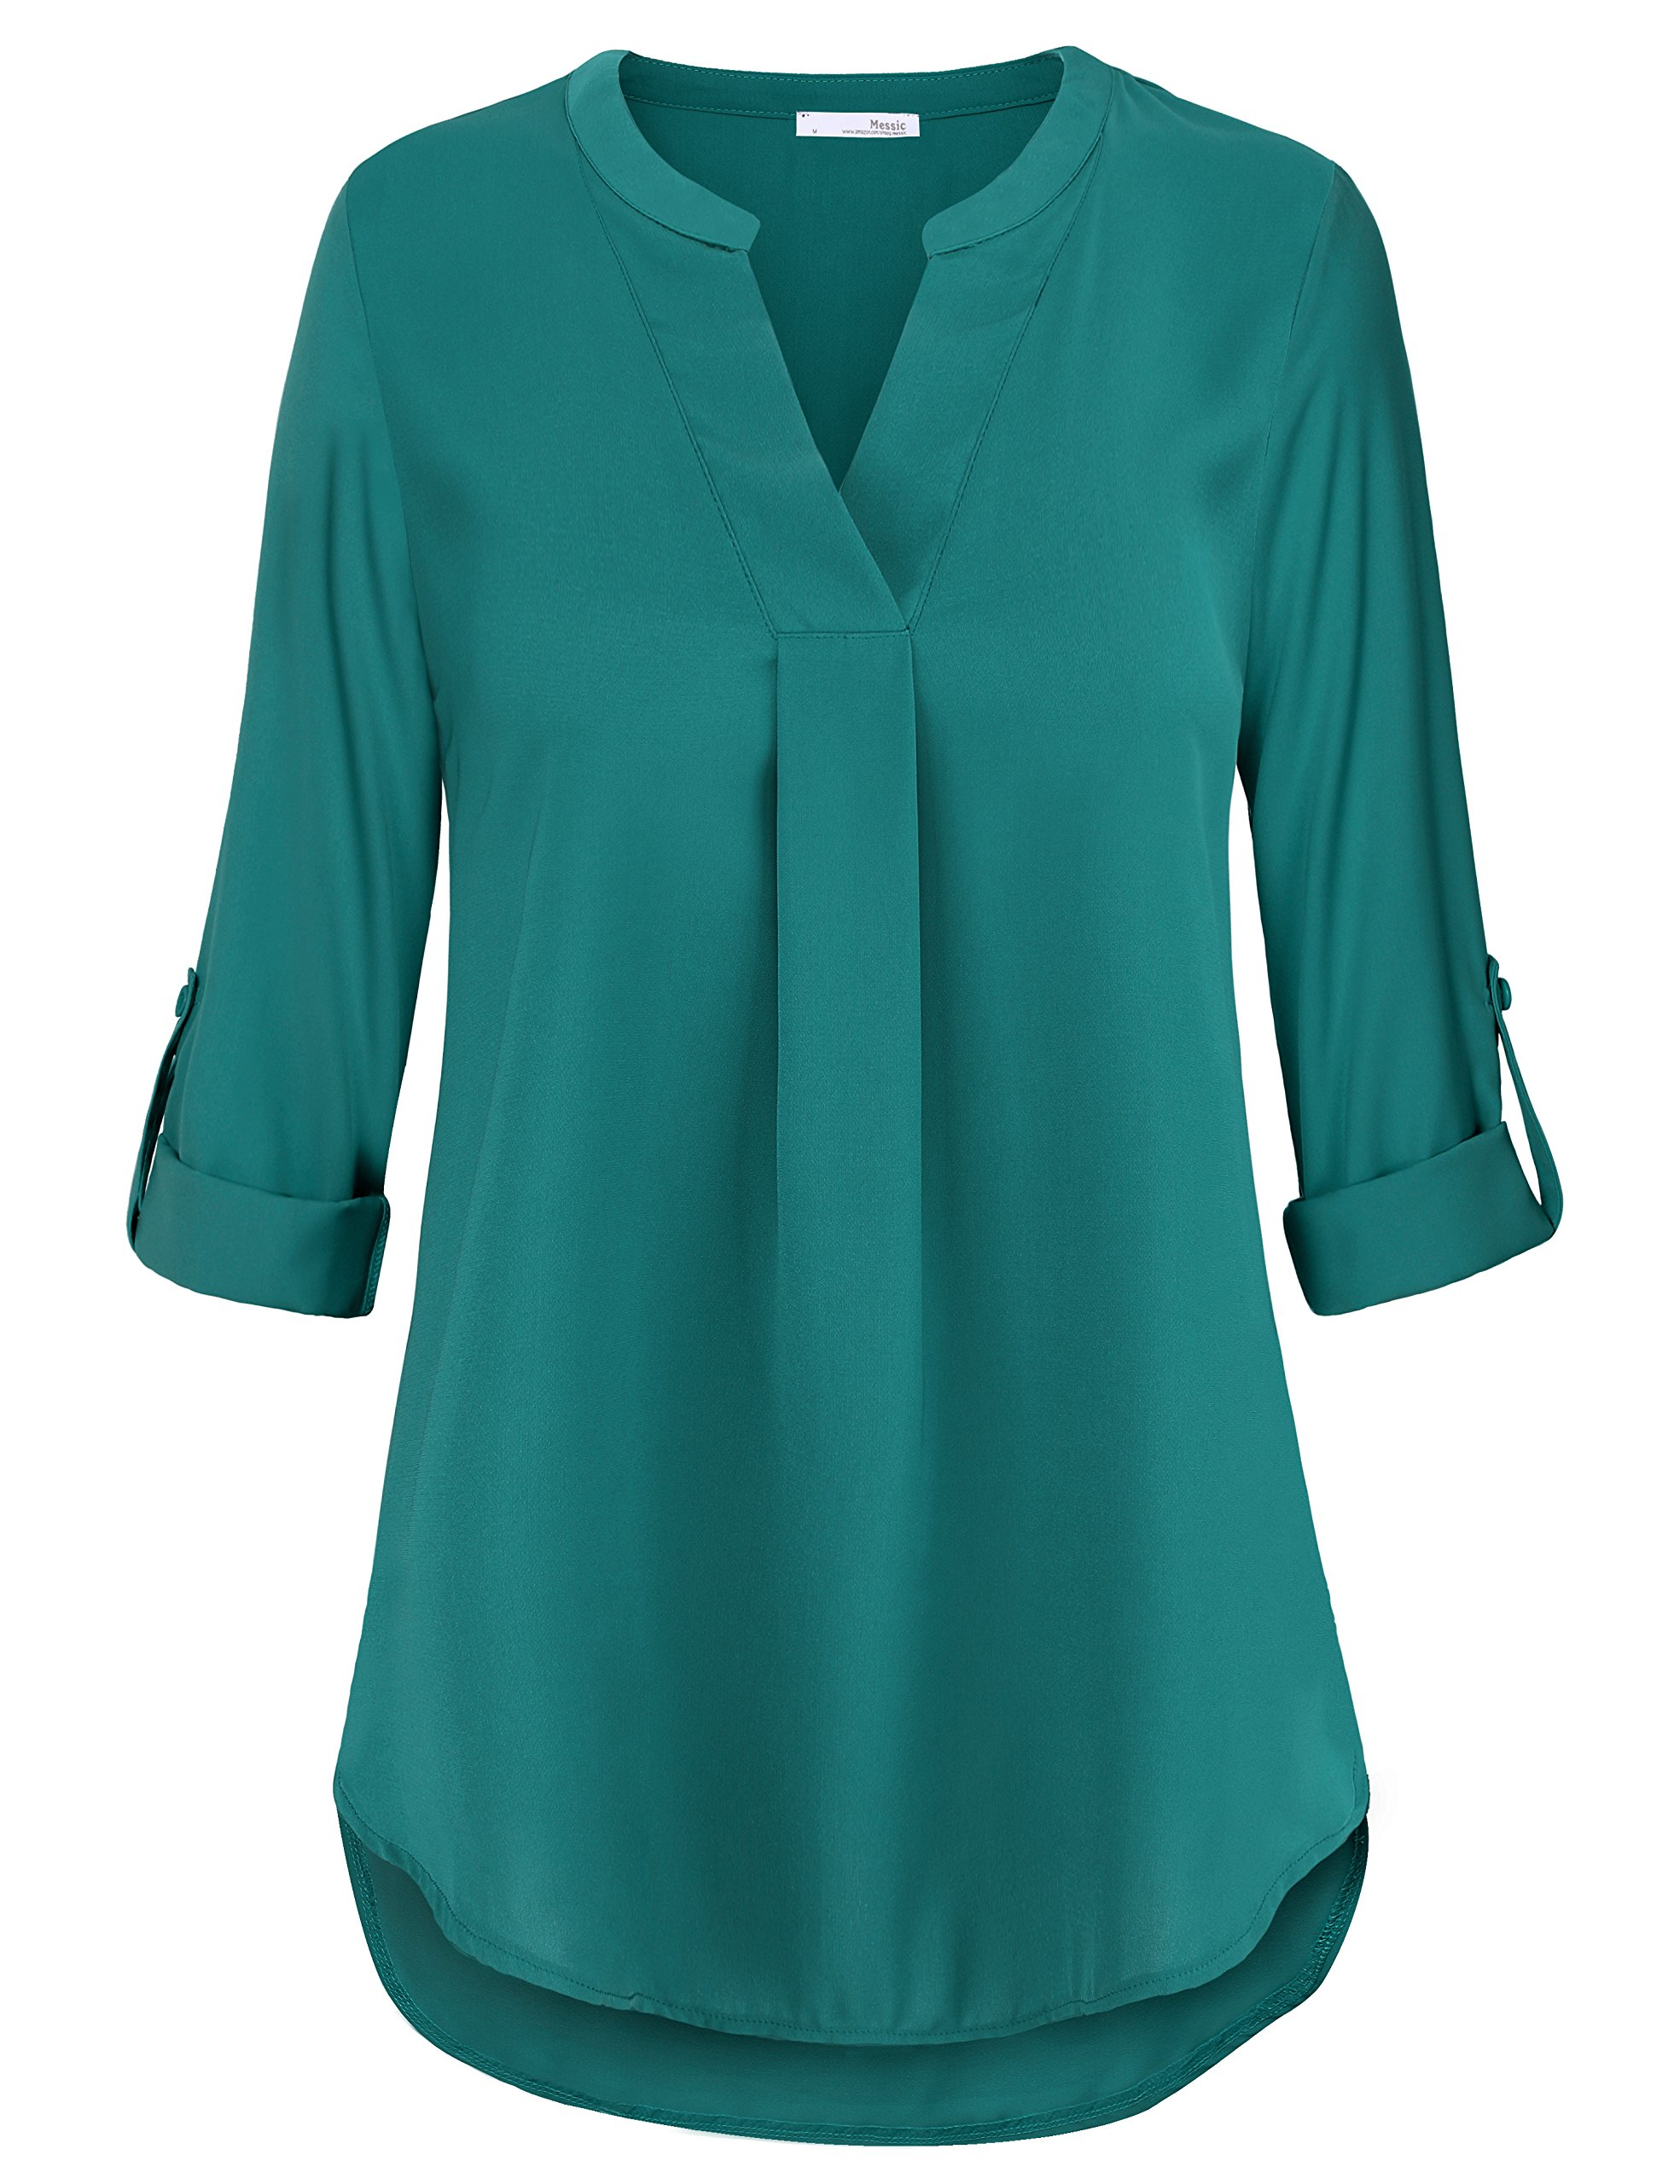 Messic Direct Tunic Tops for Leggings for Women to Wear Long Sleeve Chiffon Blouses for Work Business Casual Tunic Shirts Dark Cyan Medium by Messic Direct